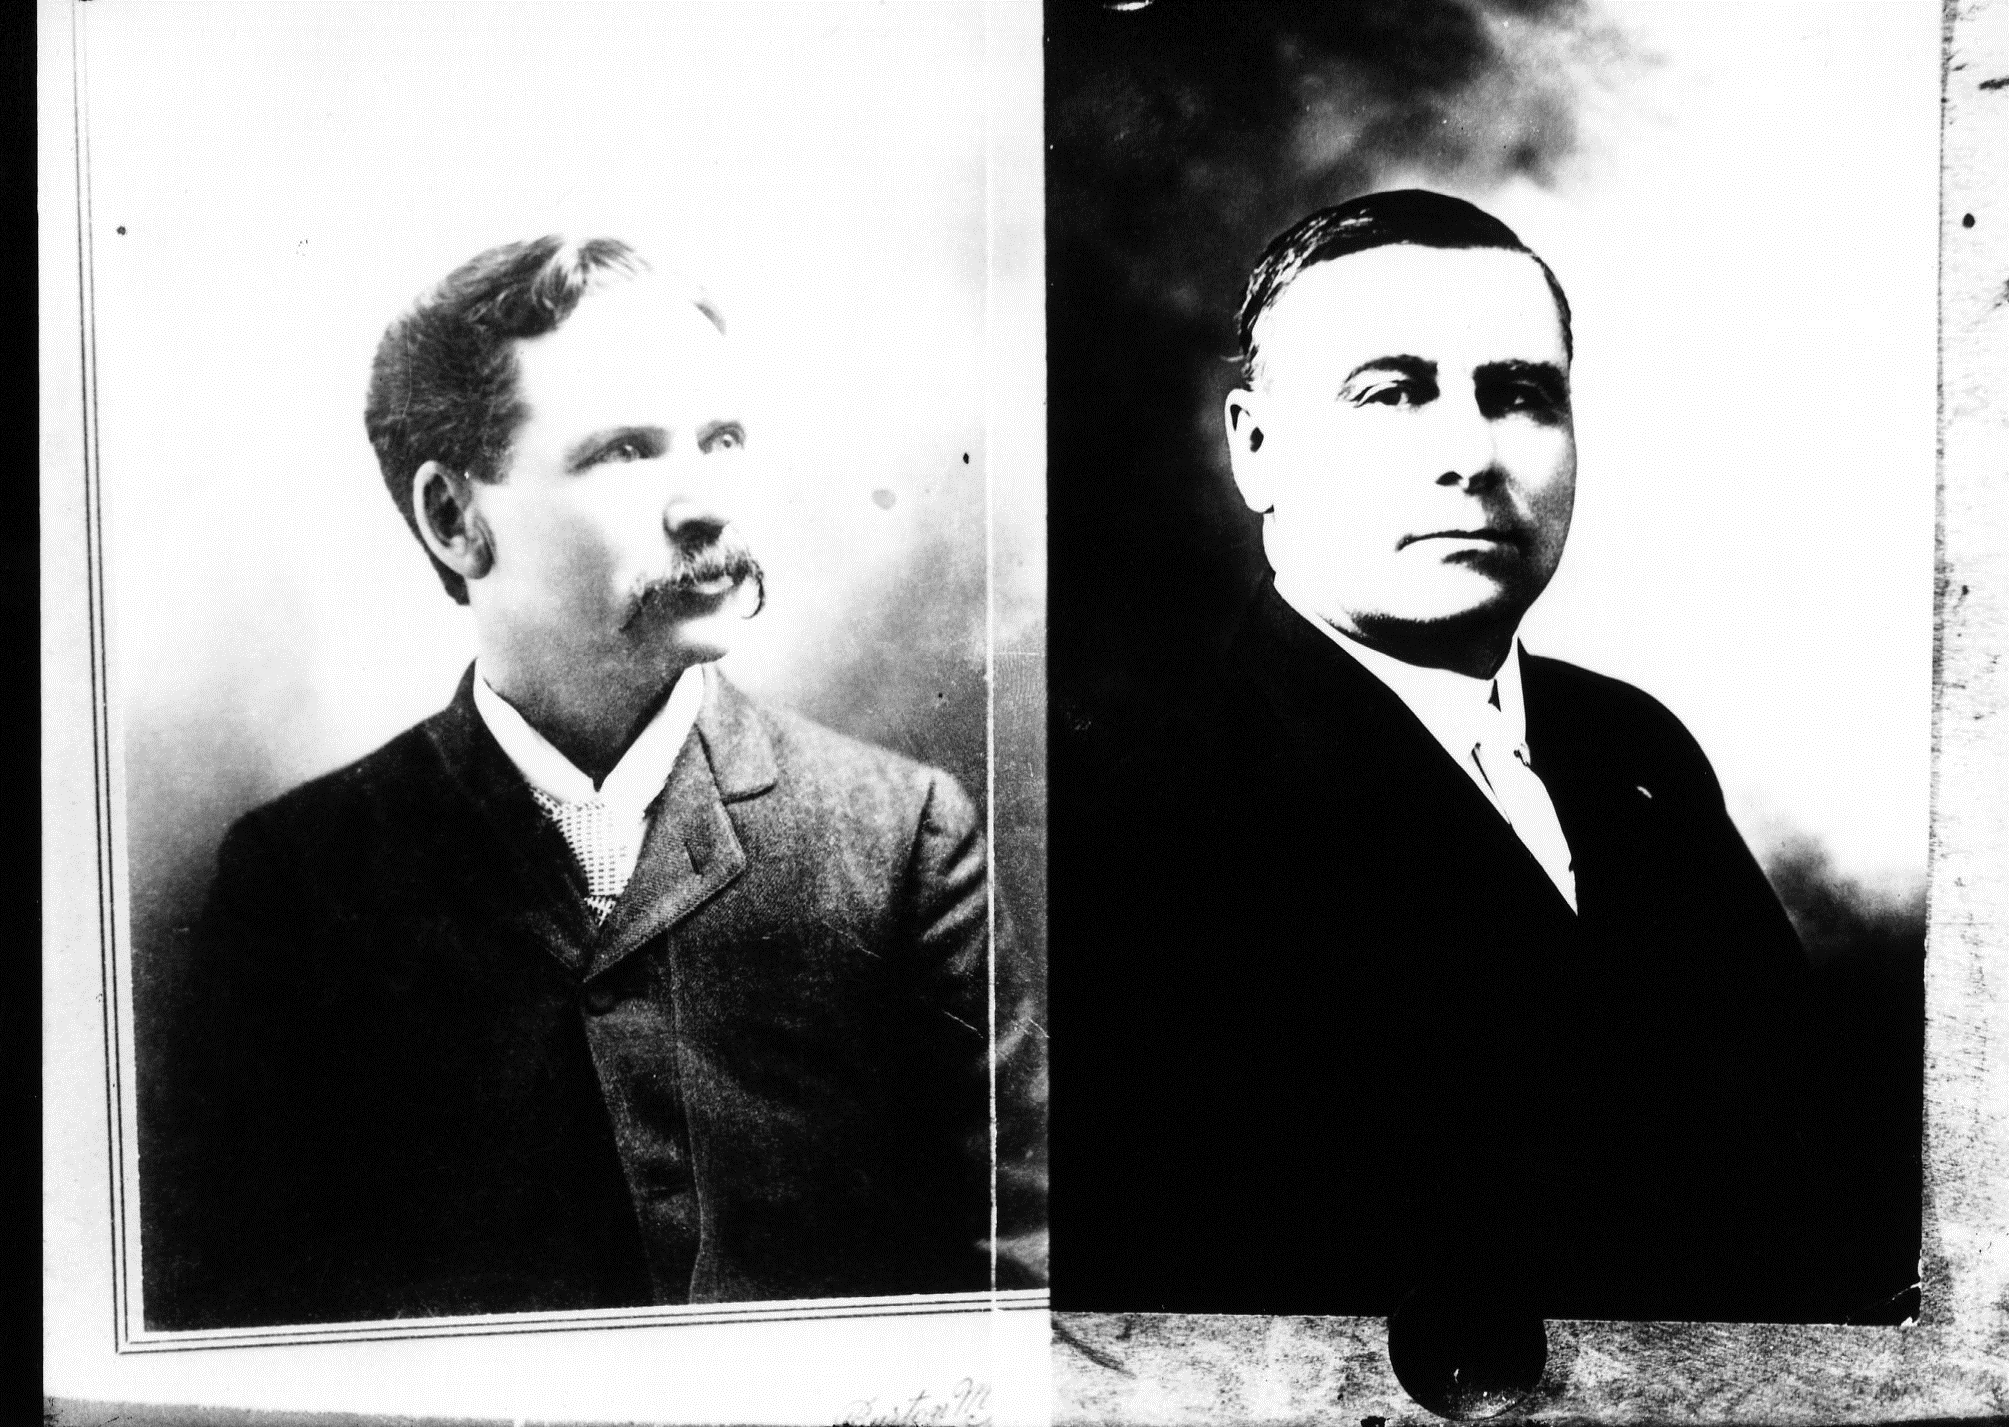 photo of Portraits of an Unidentified Man